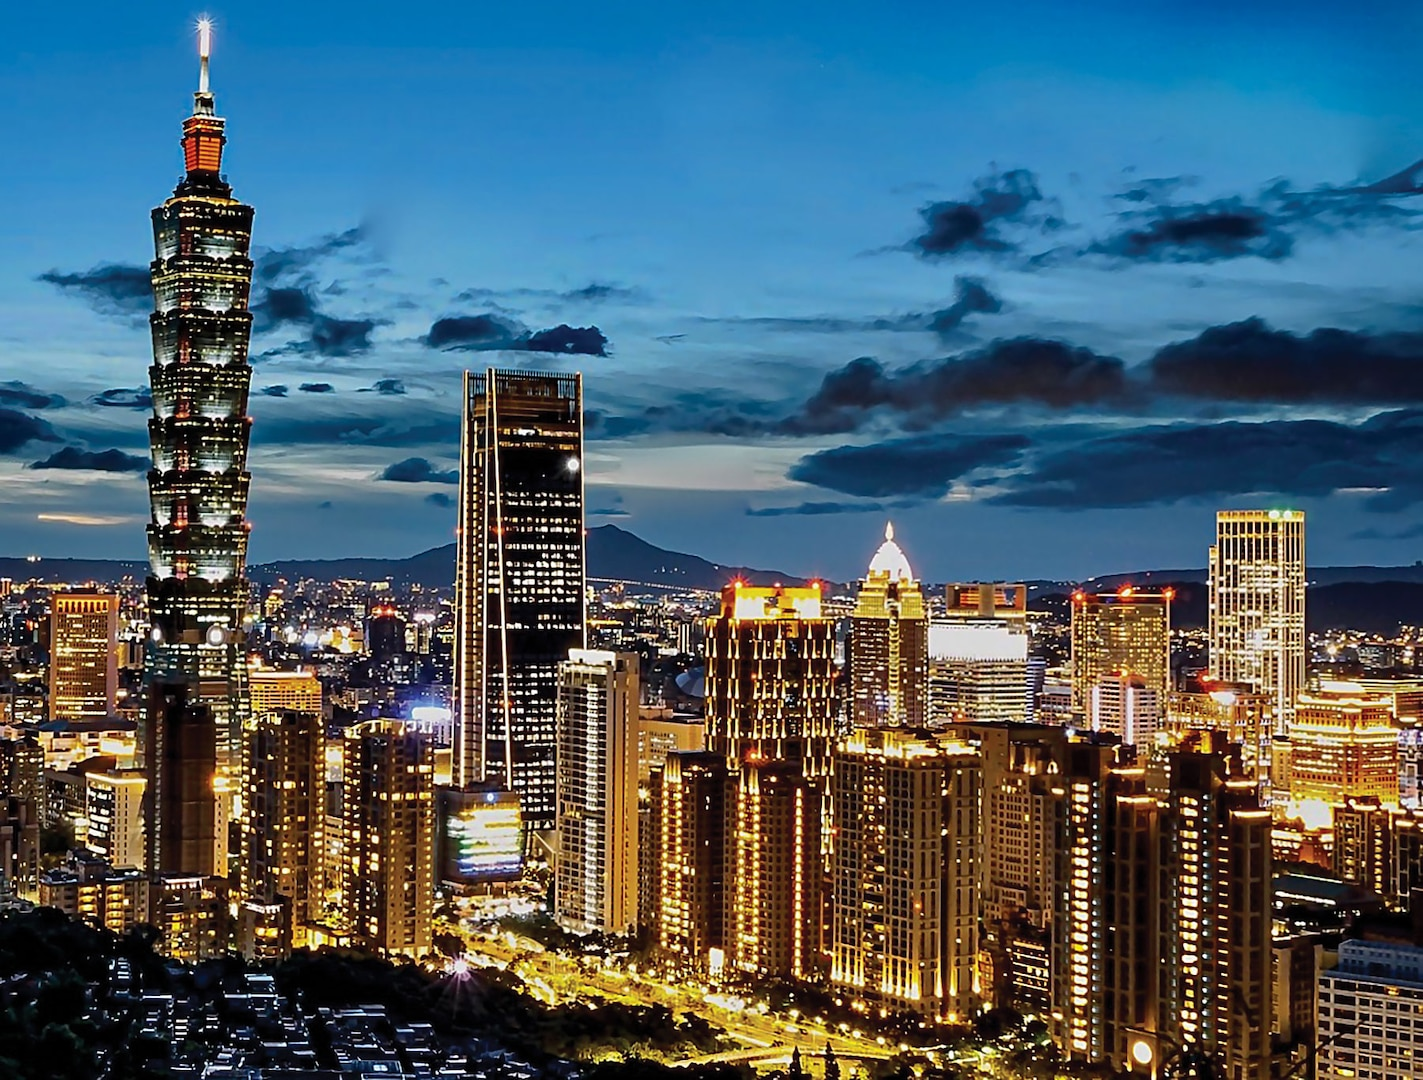 Taipei skyline view in 2020. The global pandemic is likely to harden Beijing's positions on matters of party legitimacy and national sovereignty, such as over Taiwan. (Credit: 毛貓大少爺 from Taipei, Taiwan)